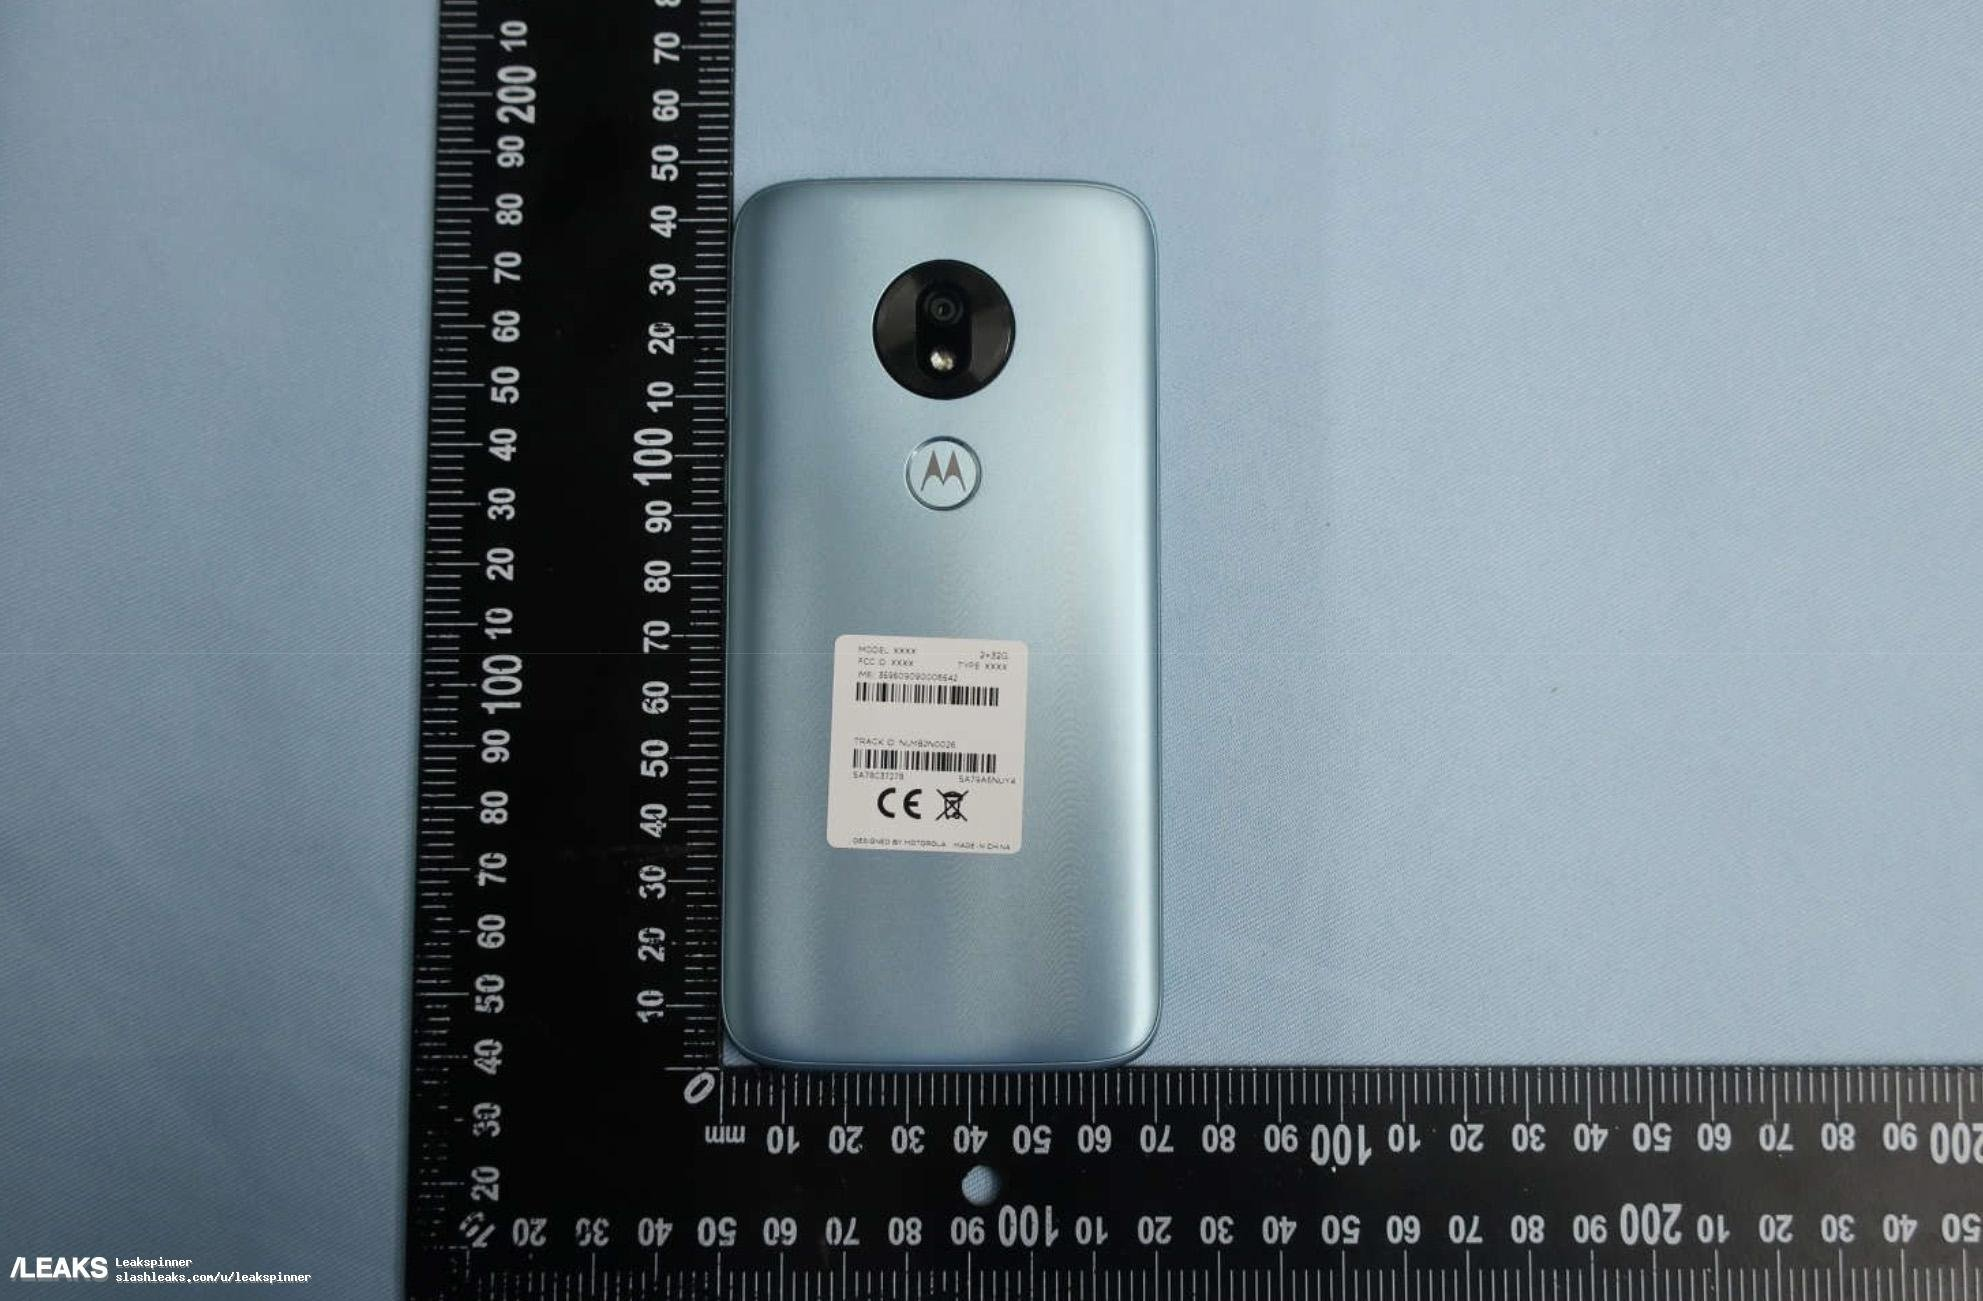 Motorola G7 play factory images